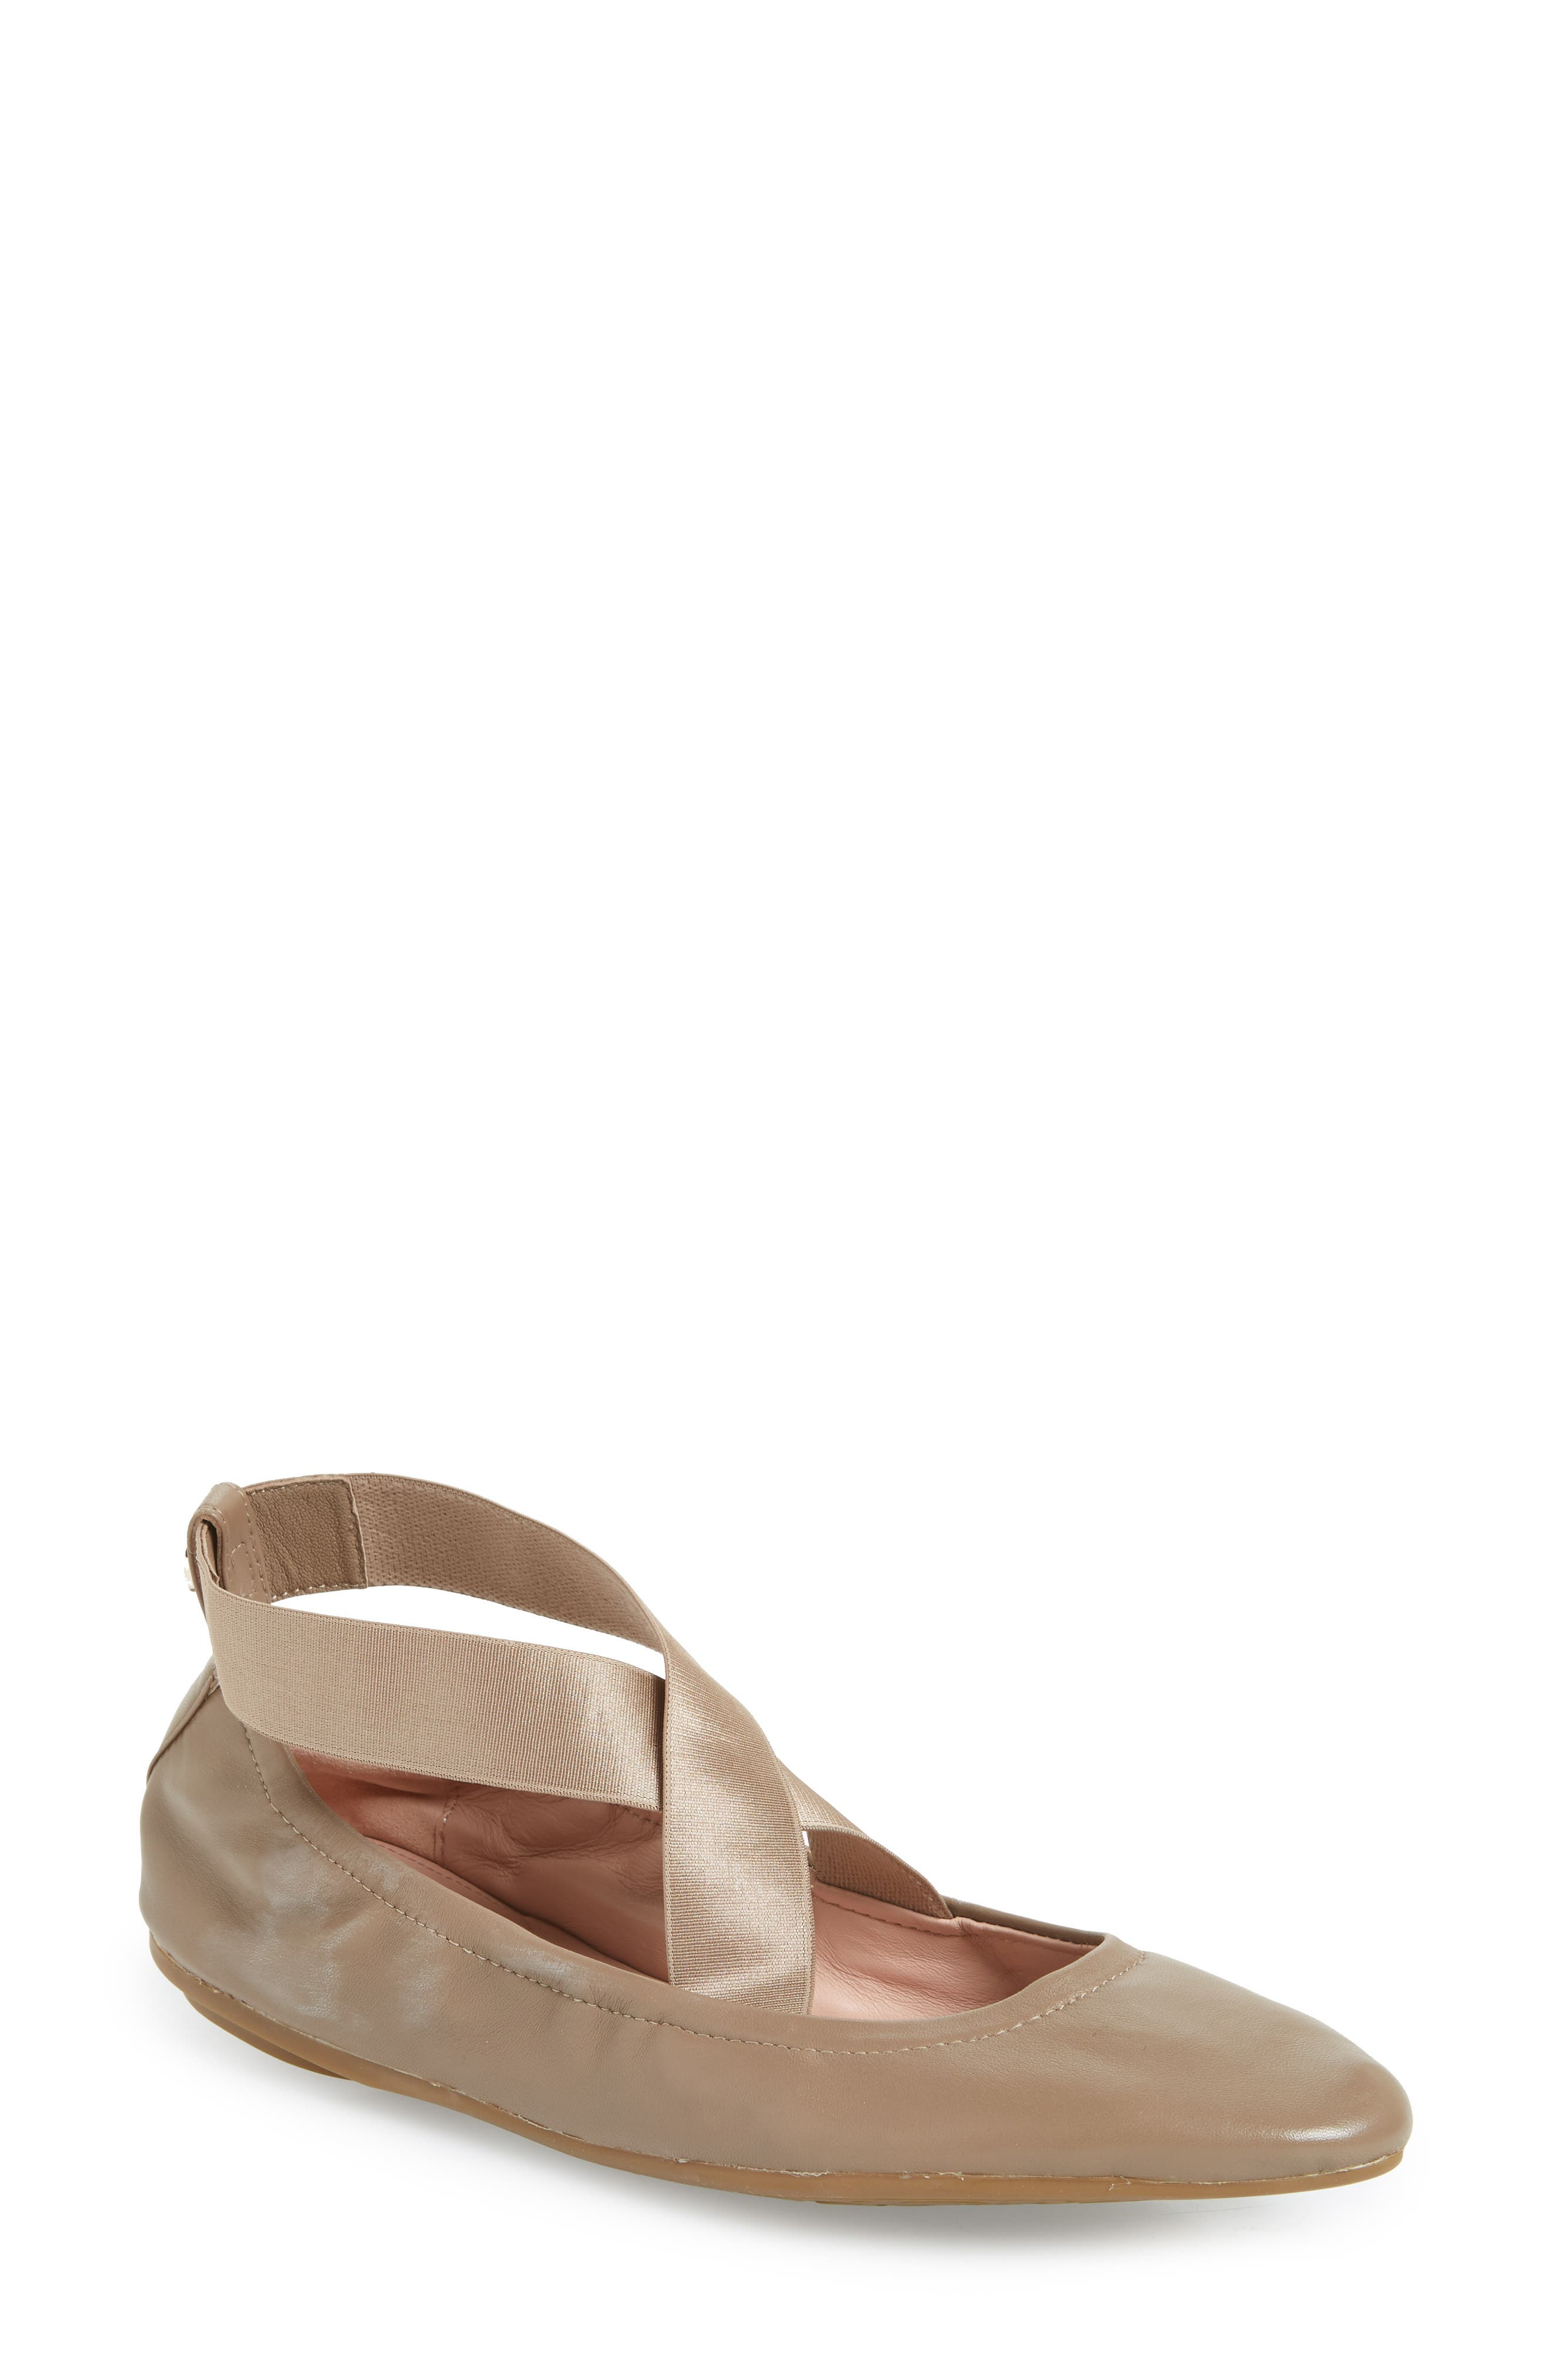 Edina Strappy Ballet Flat,                             Main thumbnail 1, color,                             260